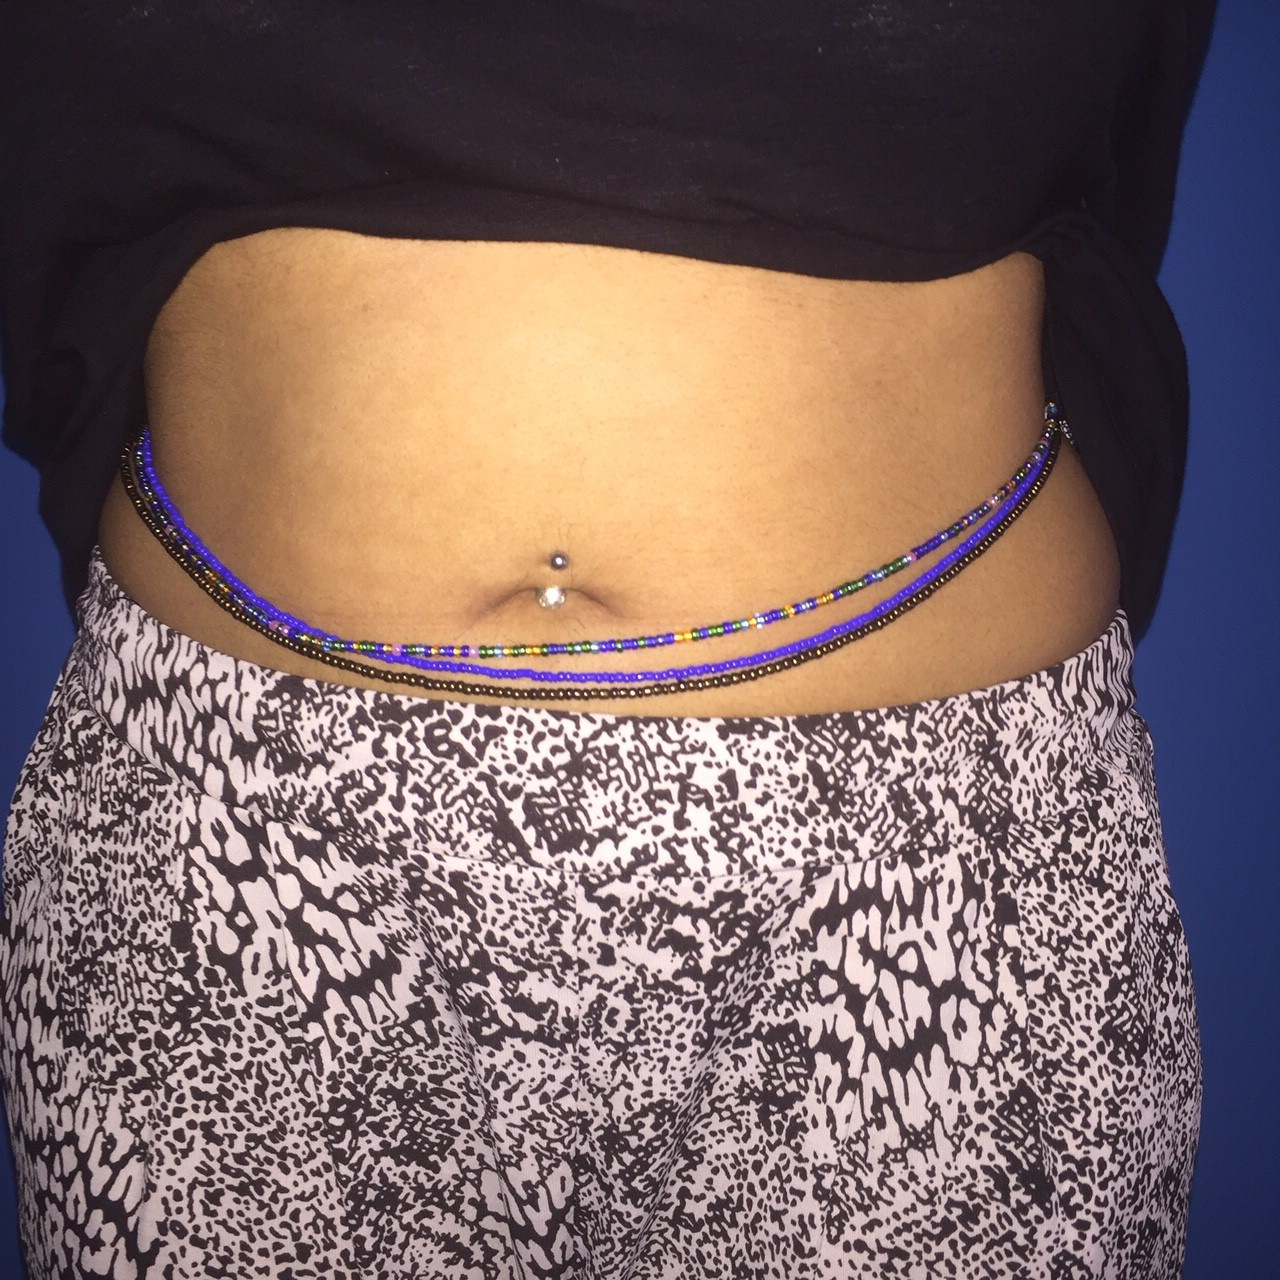 African Waist Beads For Body Shaping Lexiwiththecurls